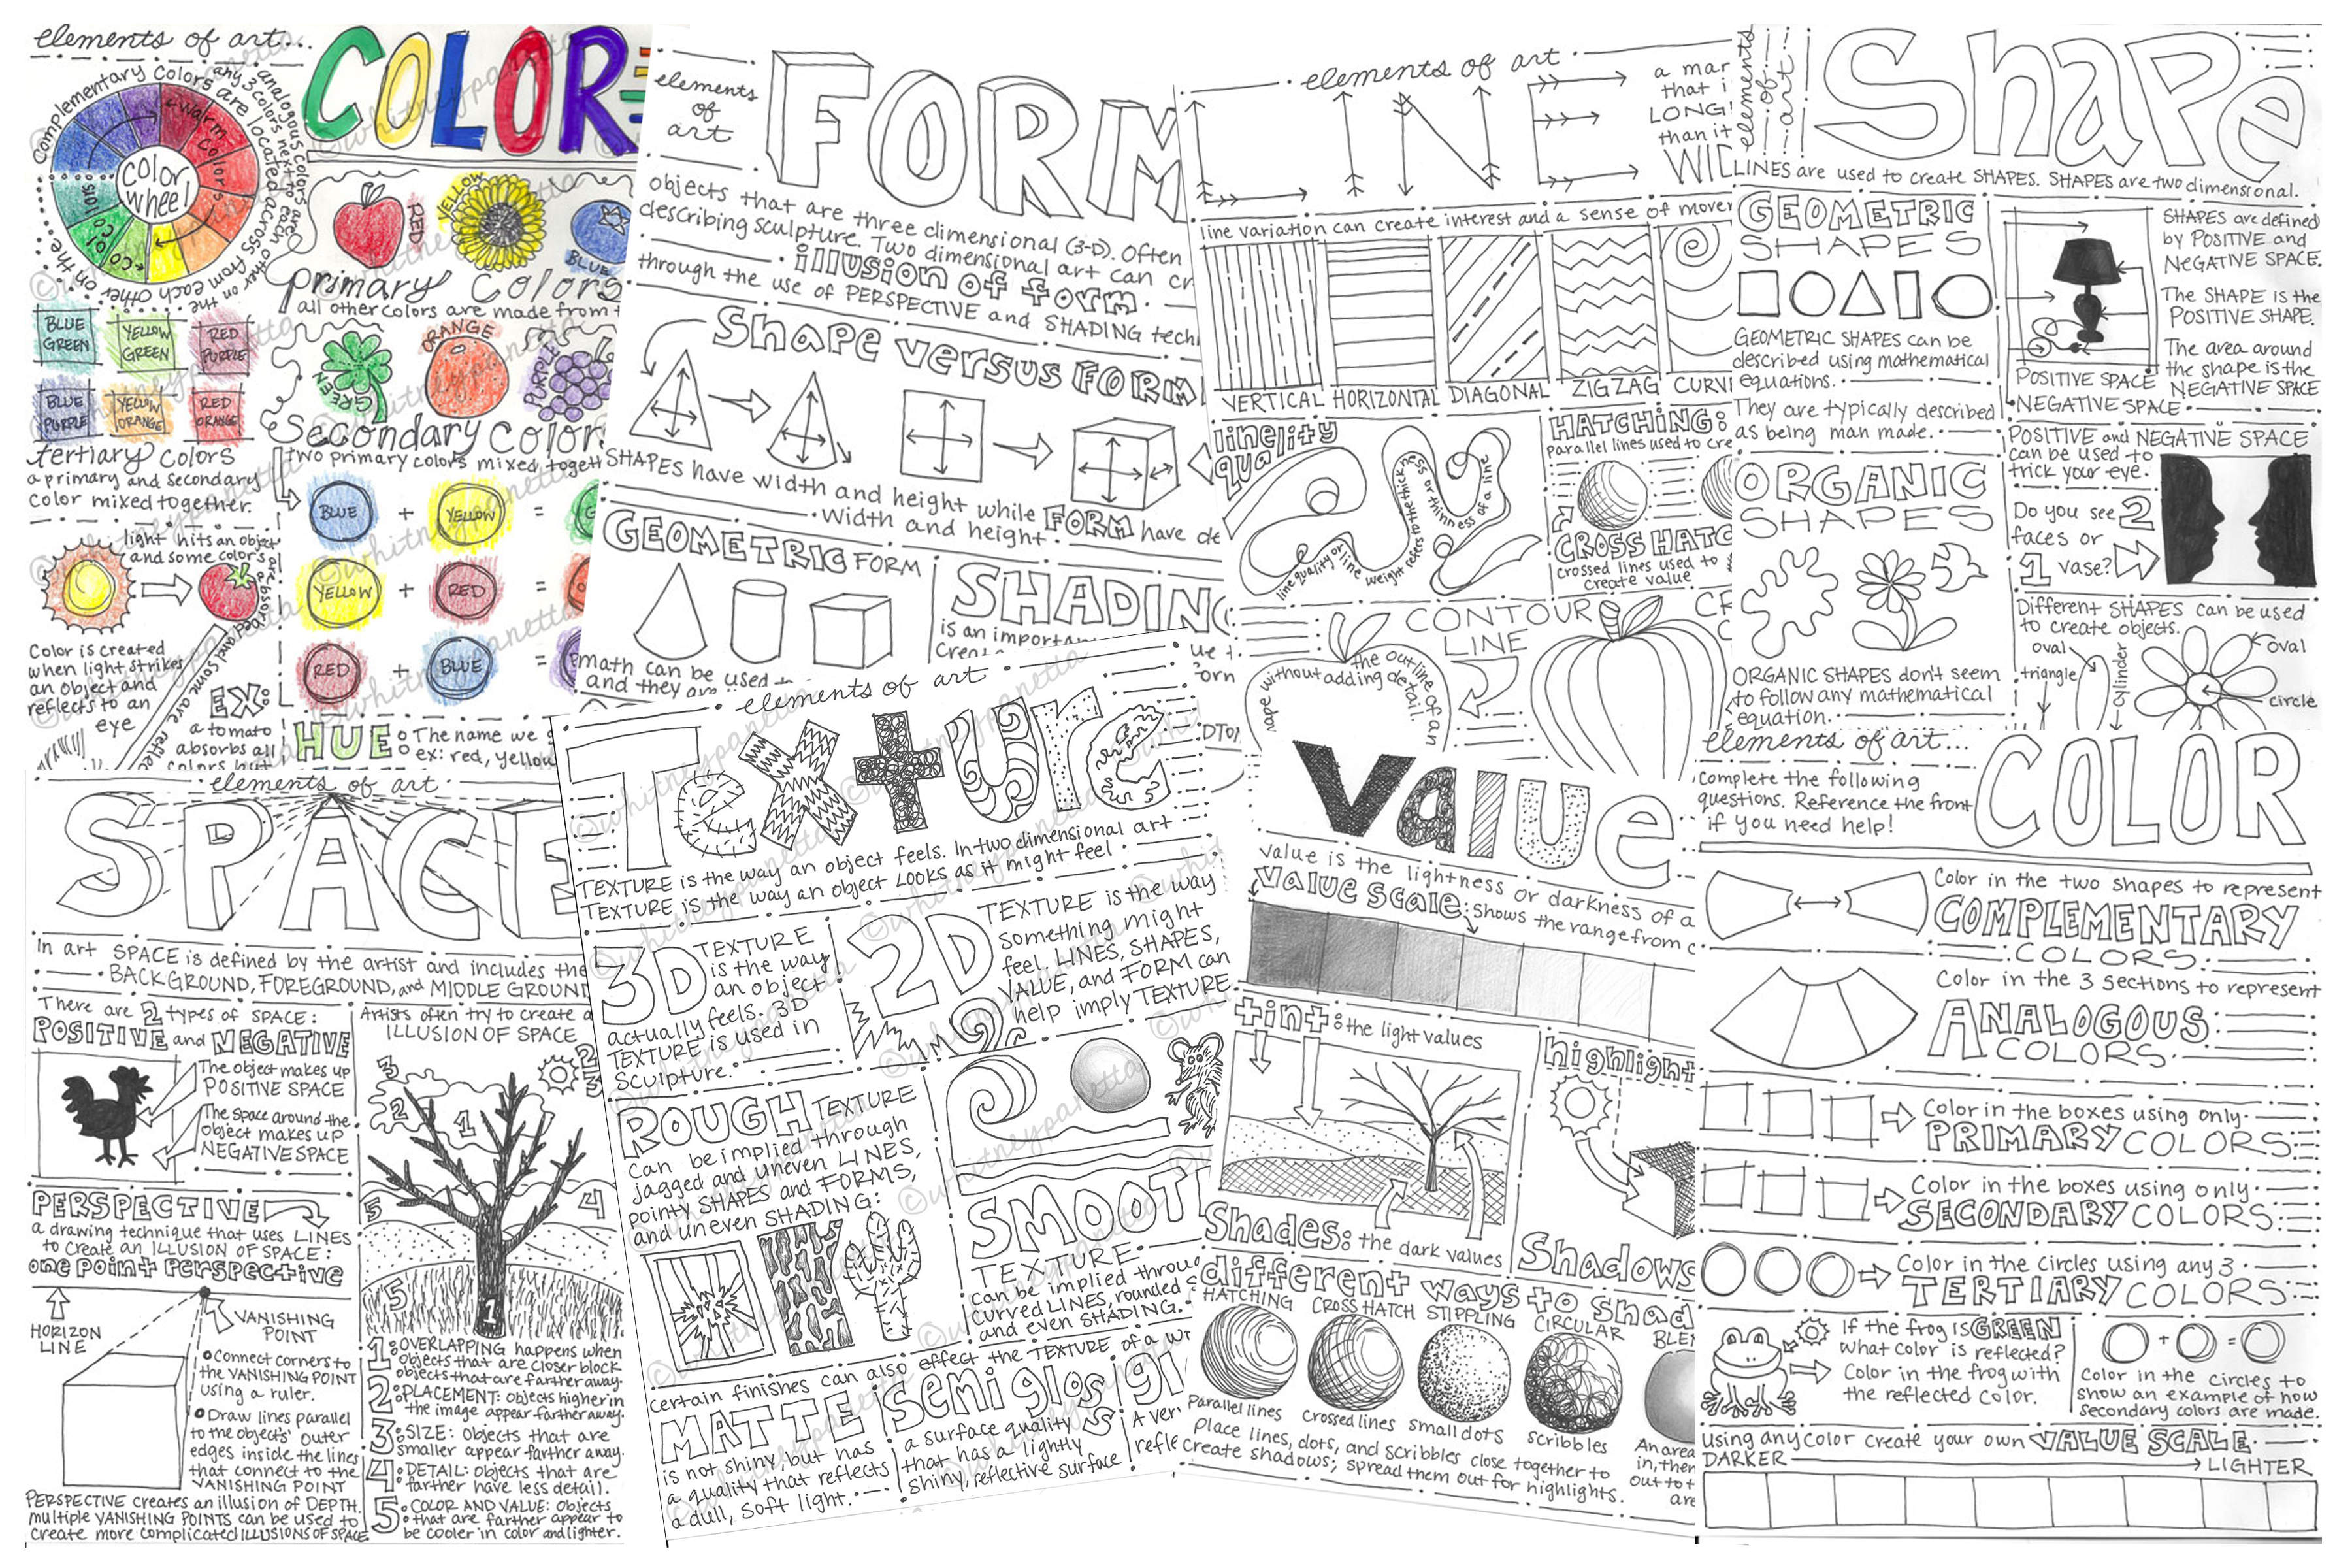 worksheet Art Worksheet look between the lines a visual journal while i enjoy handmade aspect of these products decided it was time to bring them up modern era over christmas break began digitally